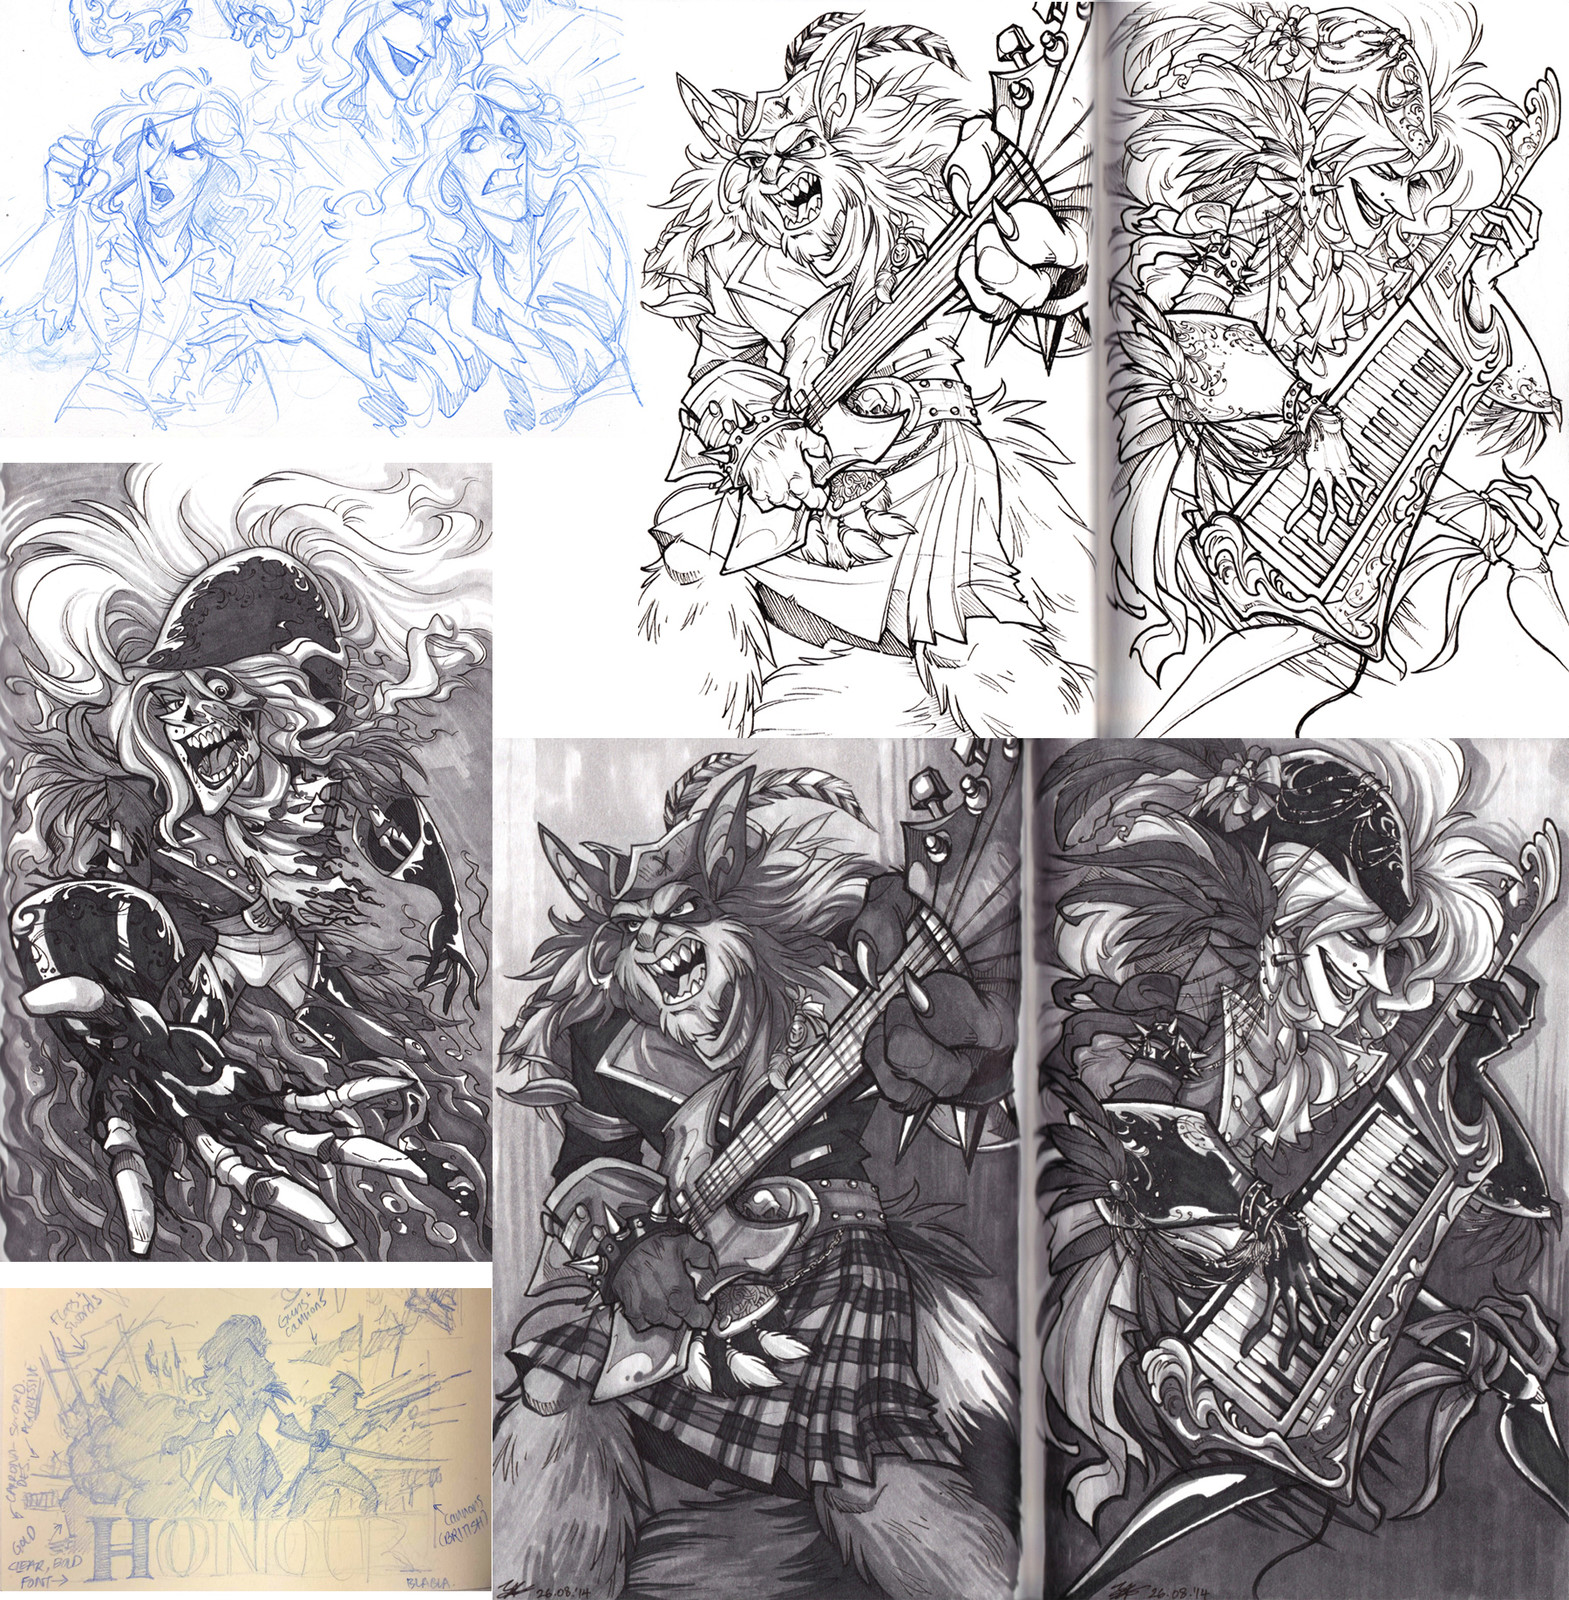 Sketchdump #2: Collection of explorations from sketchbook - (2015)